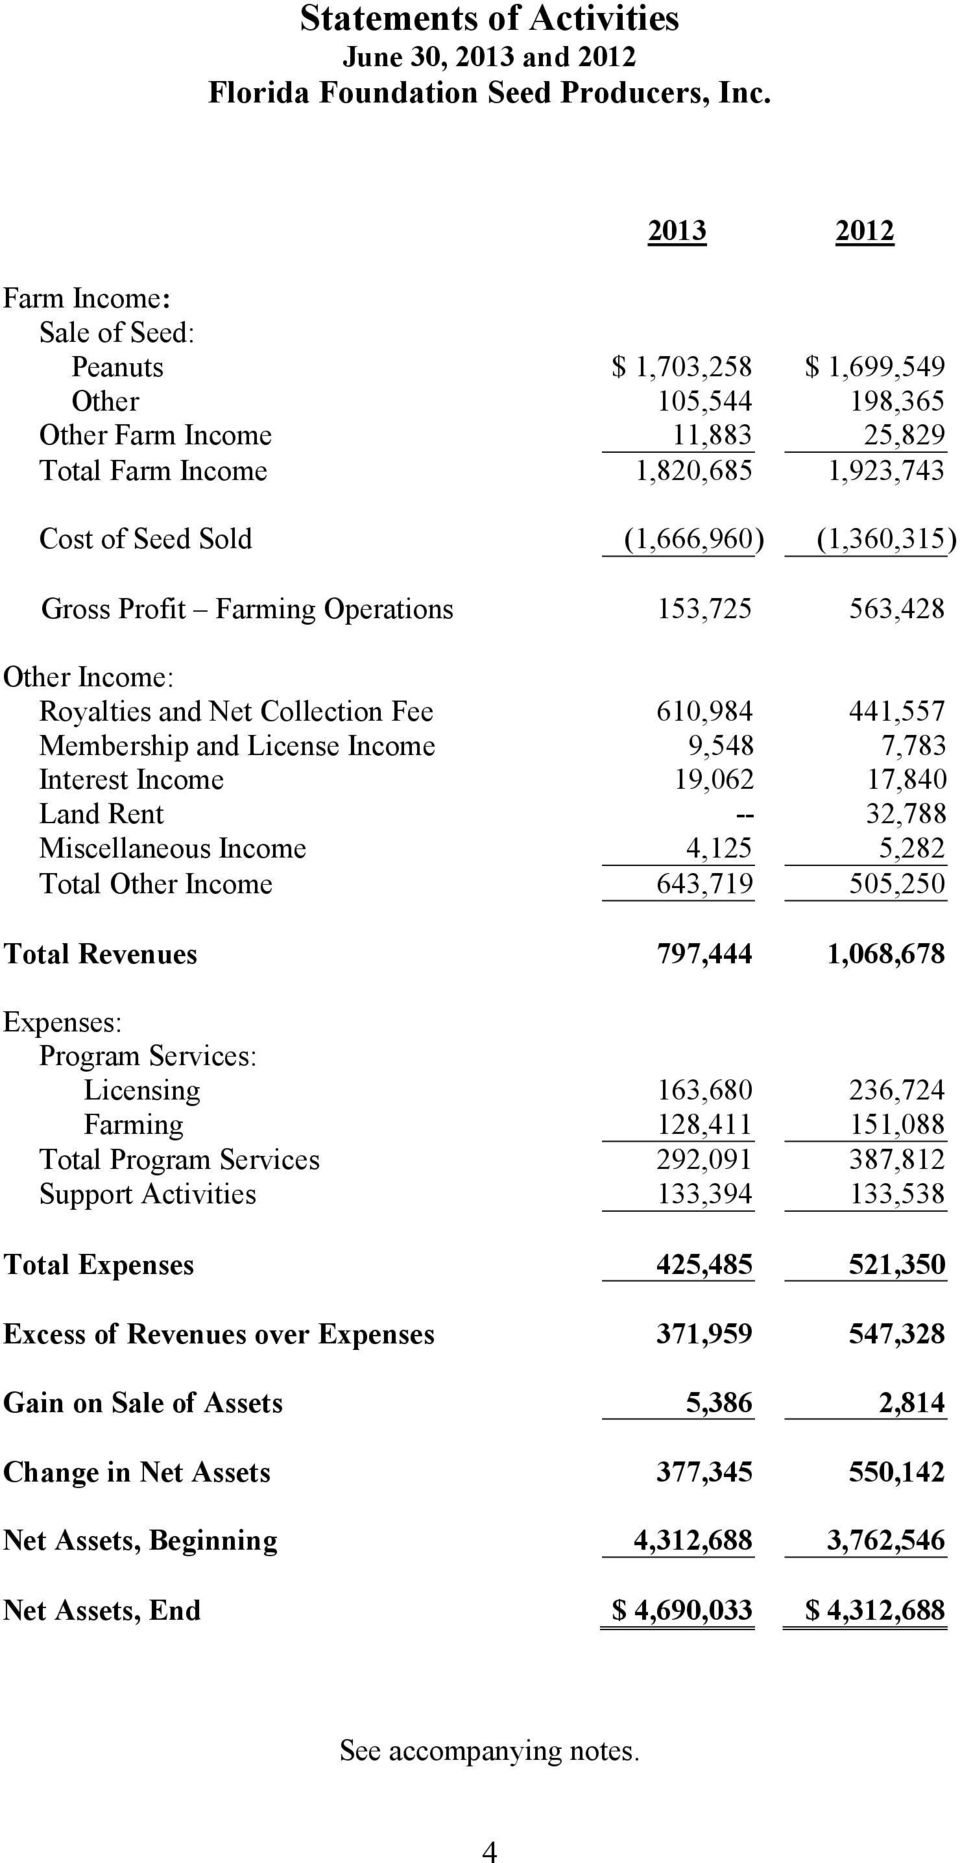 19,062 17,840 Land Rent -- 32,788 Miscellaneous Income 4,125 5,282 Total Other Income 643,719 505,250 Total Revenues 797,444 1,068,678 Expenses: Program Services: Licensing 163,680 236,724 Farming